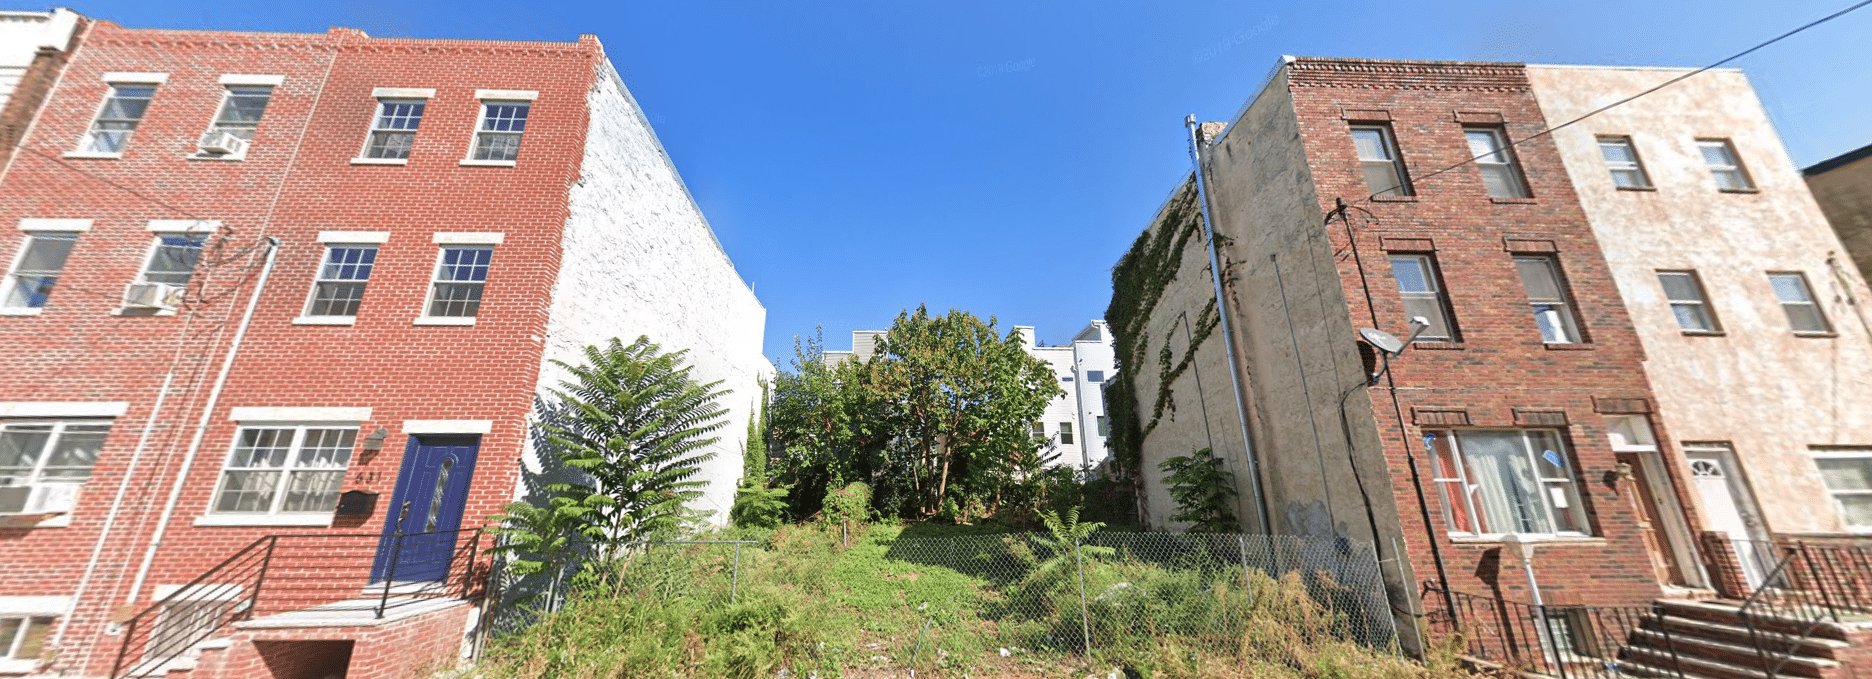 Real Estate Developer Reverses Sale of Vacant Lot